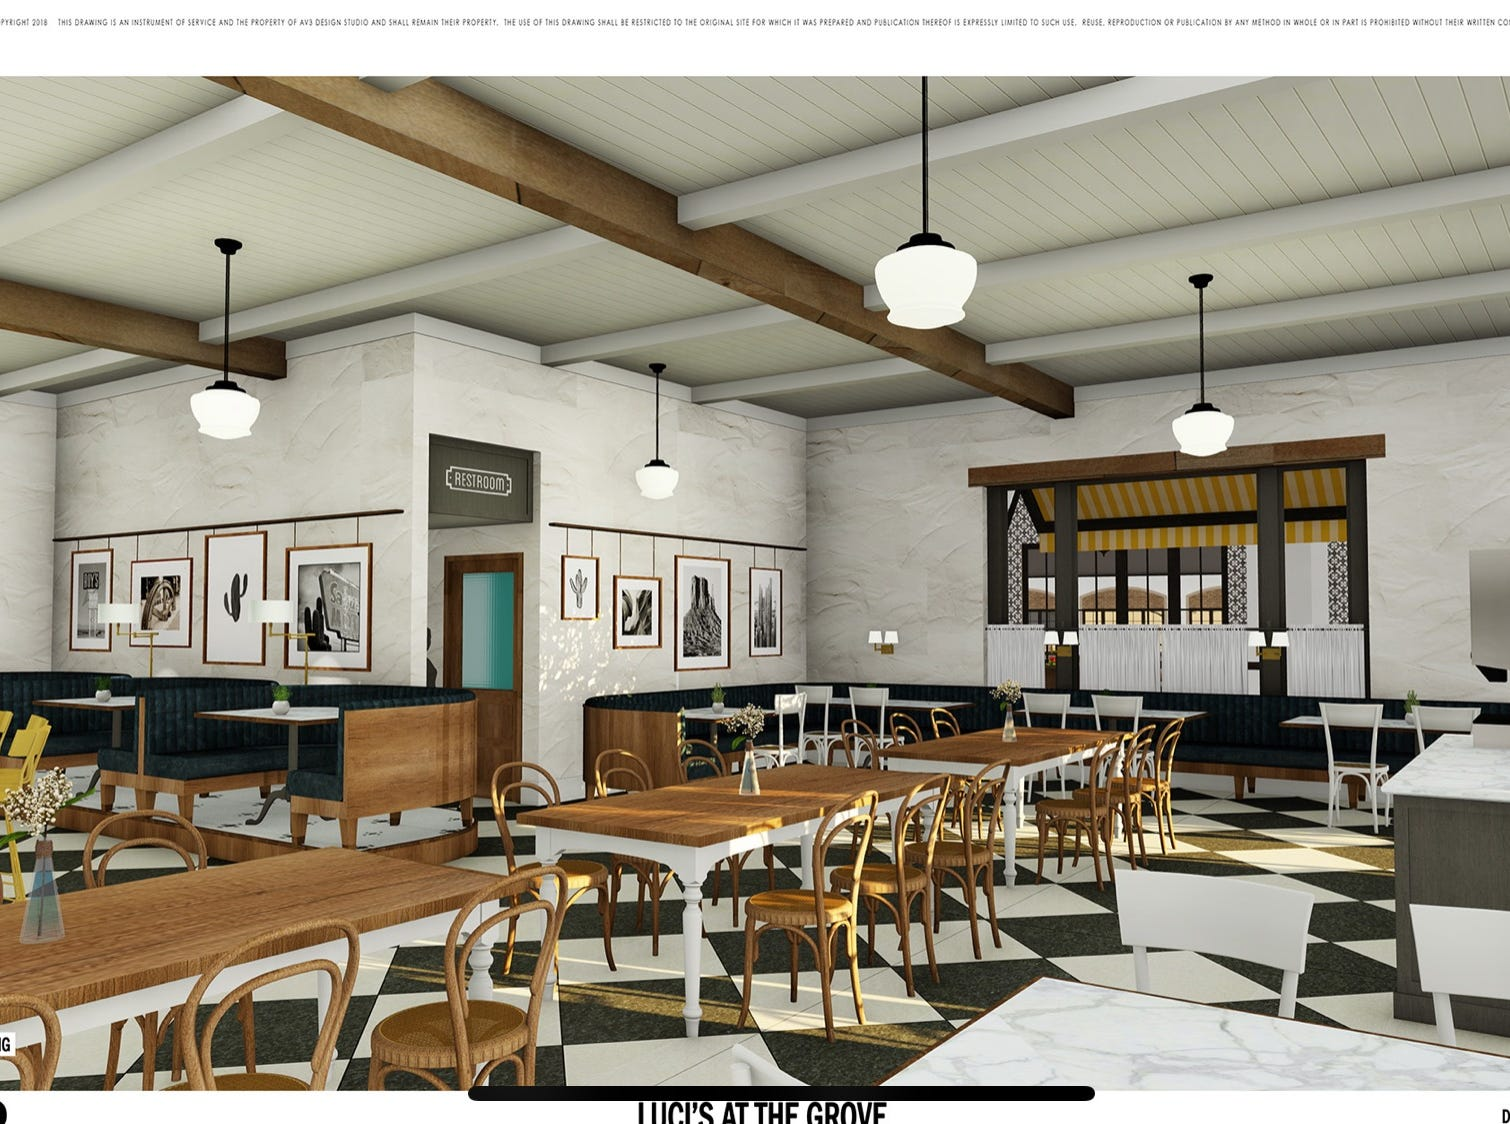 Luci's at the Grove will open at McCormick Ranch in Scottsdale in 2019.